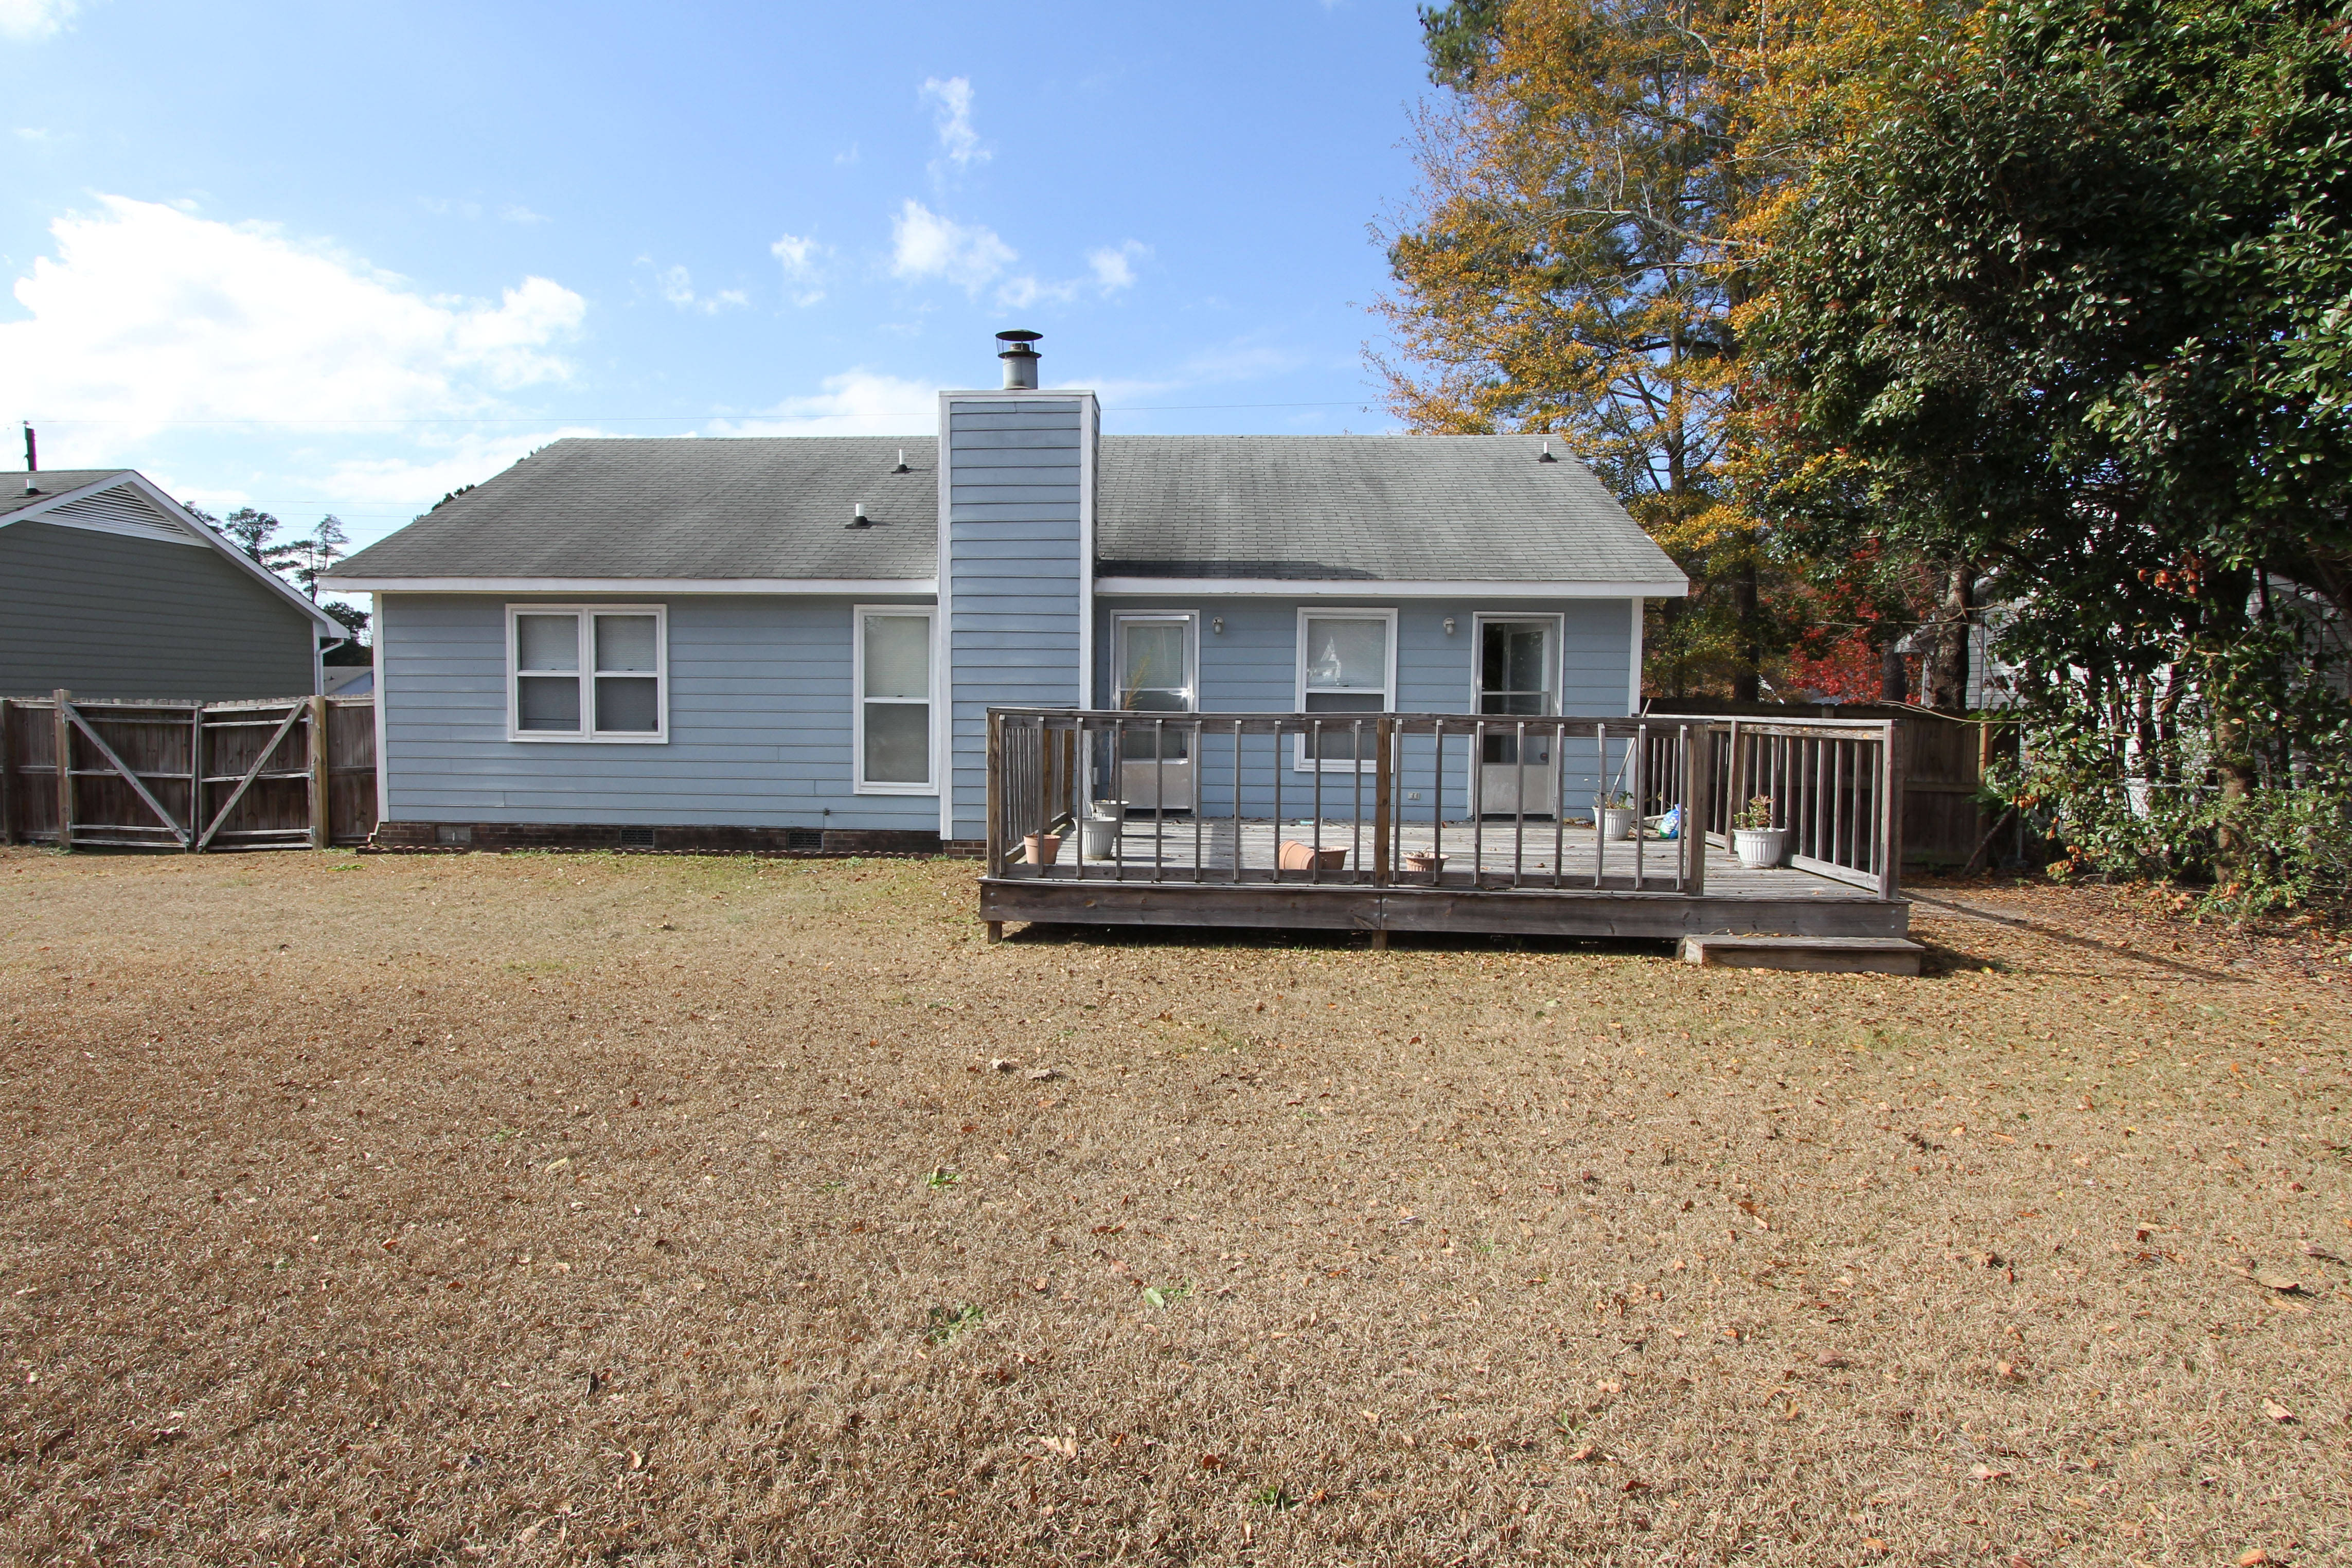 House For Sale in Fayetteville With a Big Backyard